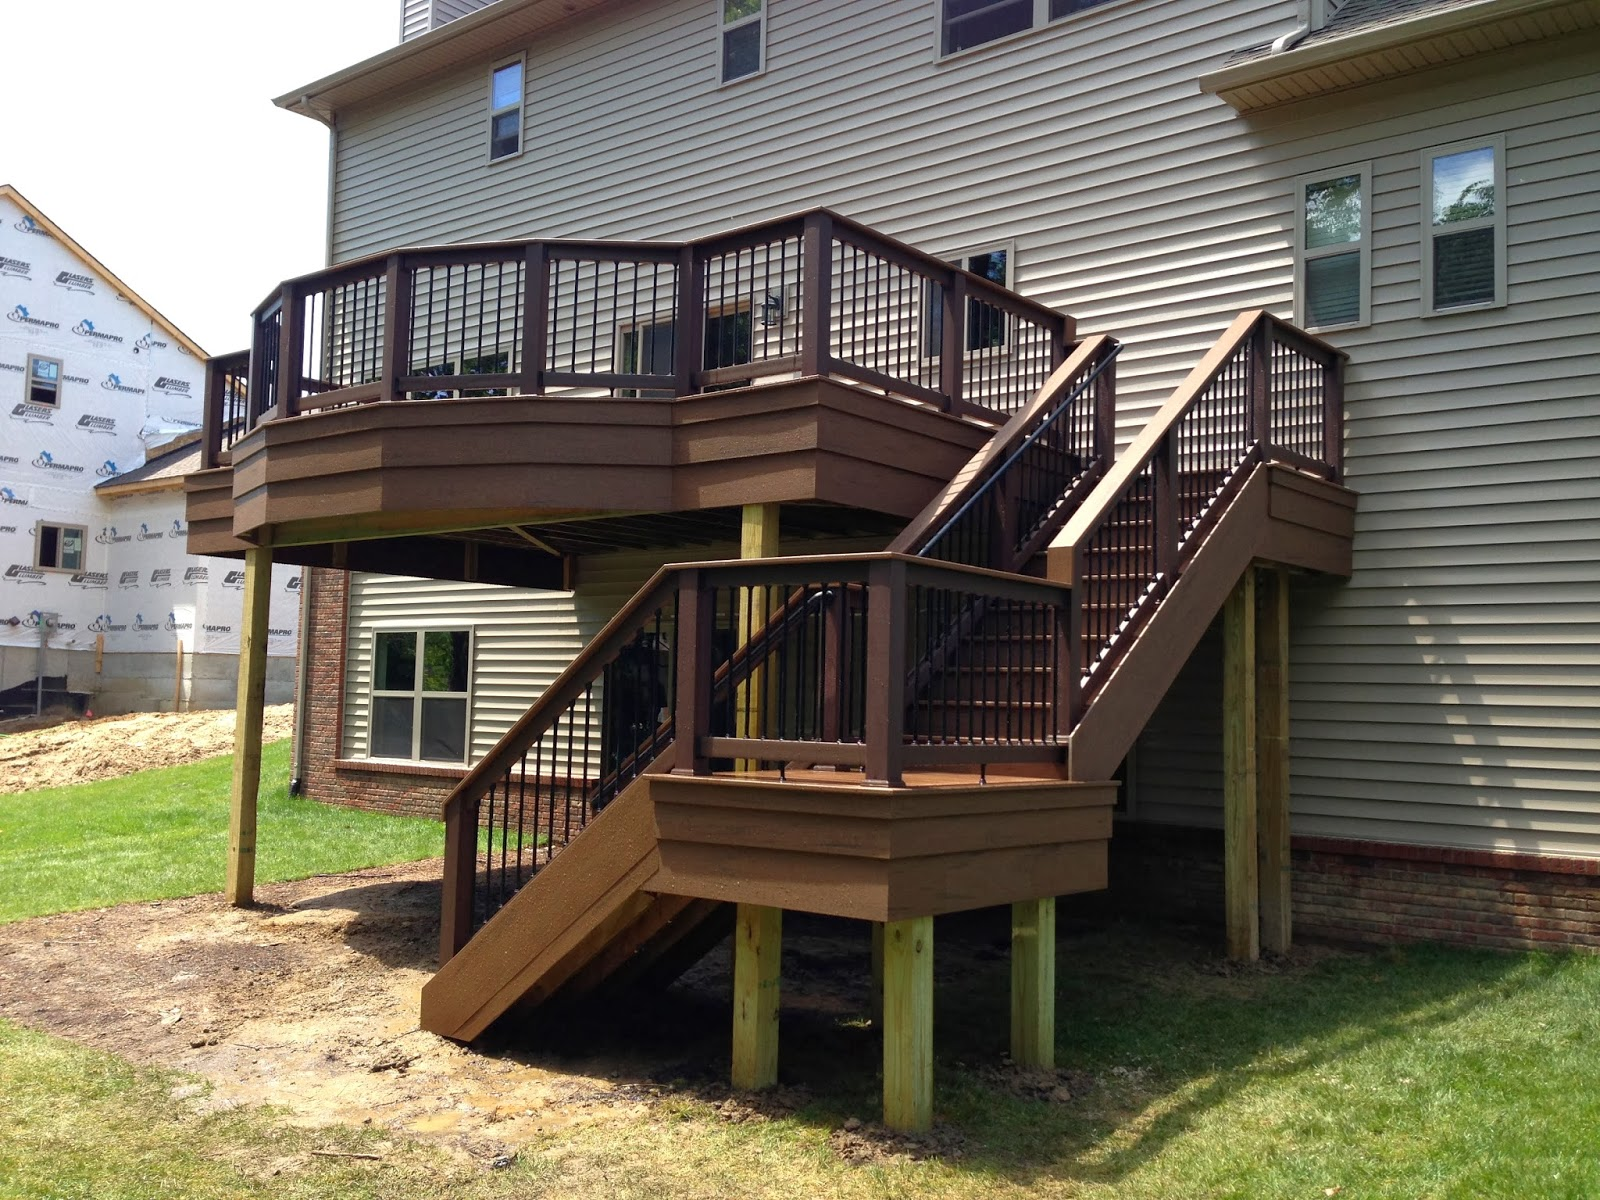 Outdoor living deck designs from 2013 adding flair to a for Walkout basement design ideas